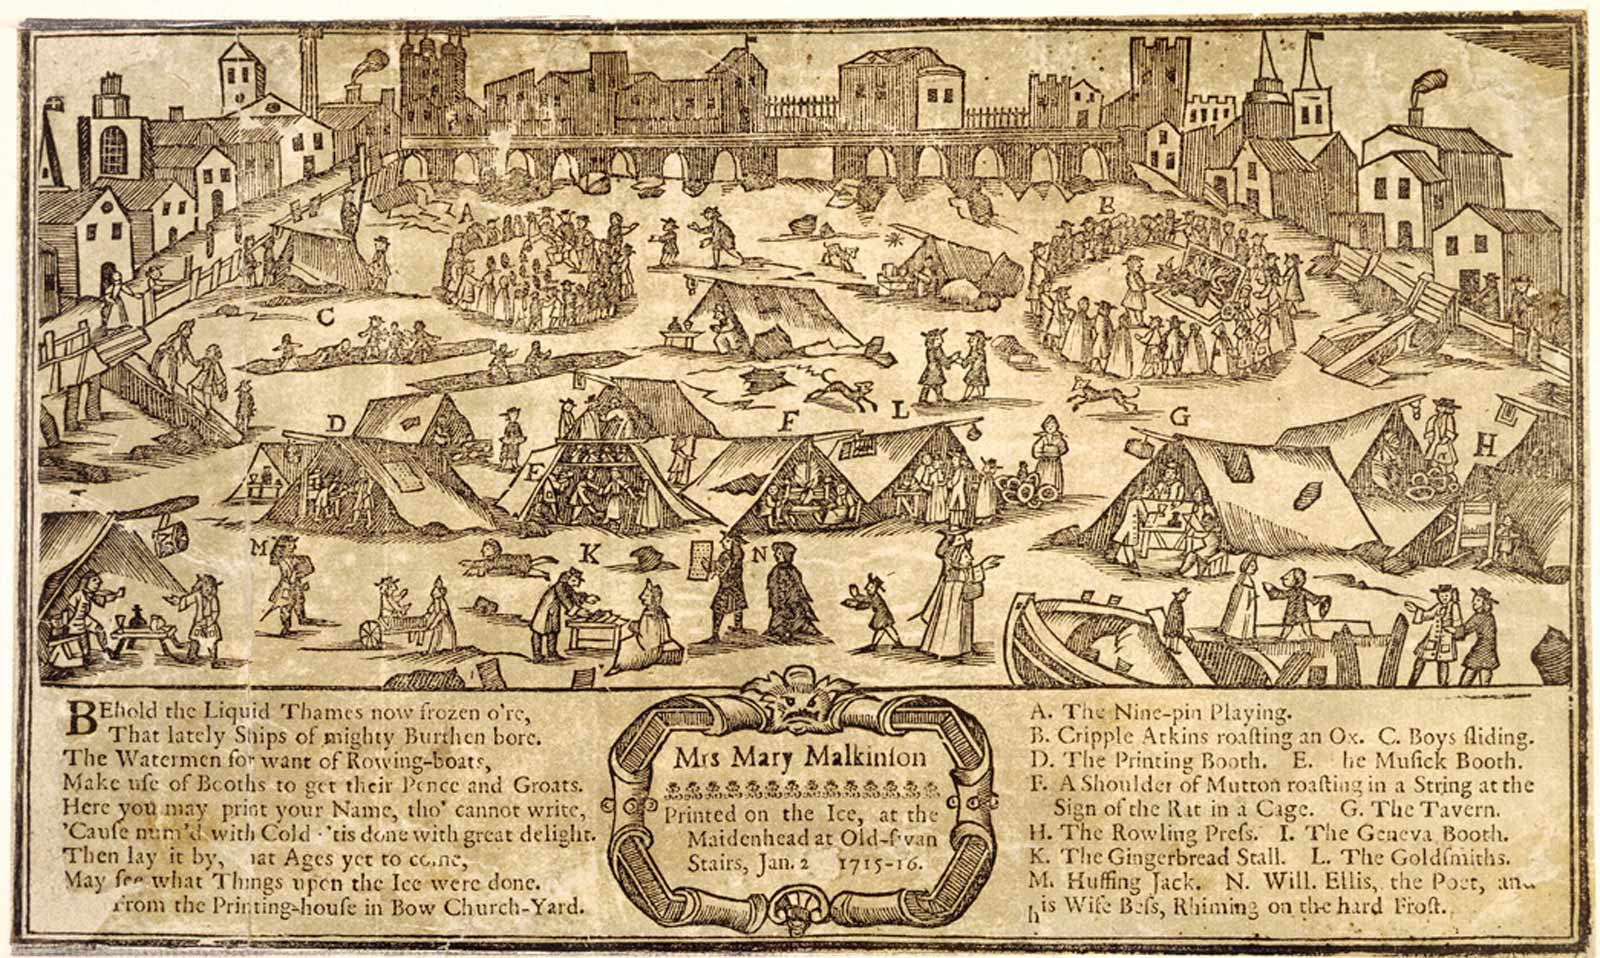 The frost fair on the river Thames in 1715-1716. Woodcut. This view is taken from near Temple Stairs, with Old London Bridge in the background, with many people and tents in the foreground. Many of these individual tents are lettered, indicating what amusements can be had on the ice. A. The Nine-pin Playing; B. Cripple Atkins roasting an Ox; C. Boys sliding; D. The Printing Booth; E. The Musick Booth; F. A shoulder of Mutton roasting in a String at the sign of the Rat in a Cage; G. The Tavern; H. The Rowling Press; I. The Geneva Booth; K. The Gingerbread Stall; L. The Goldsmiths; M. Hussing Jack; N. Will. Ellis, the Poet, and his Wife Bess Rhiming on the hard Frost. From the Printing-house in Bow Church Yard. This is one of a genre of frost fair prints which were made up in advance by a printer and then customized on the ice, with the name of the purchaser.